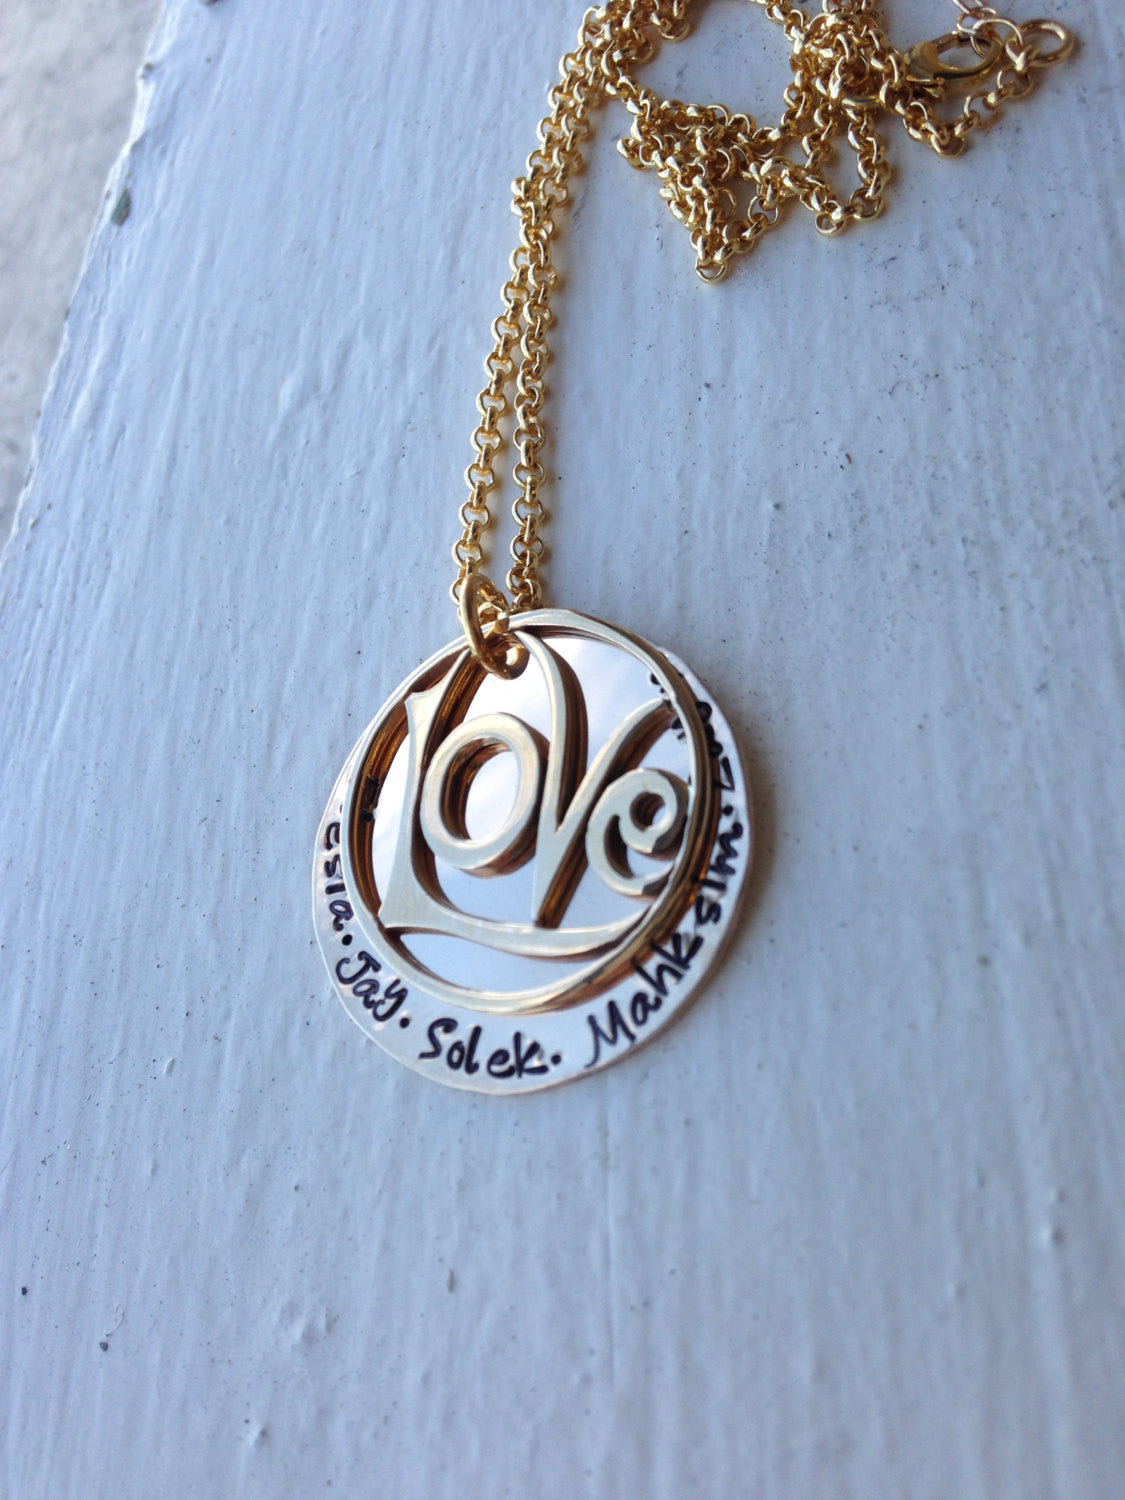 Love All Around...Custom 14k Gold Filled Name Necklace... Hand Stamped